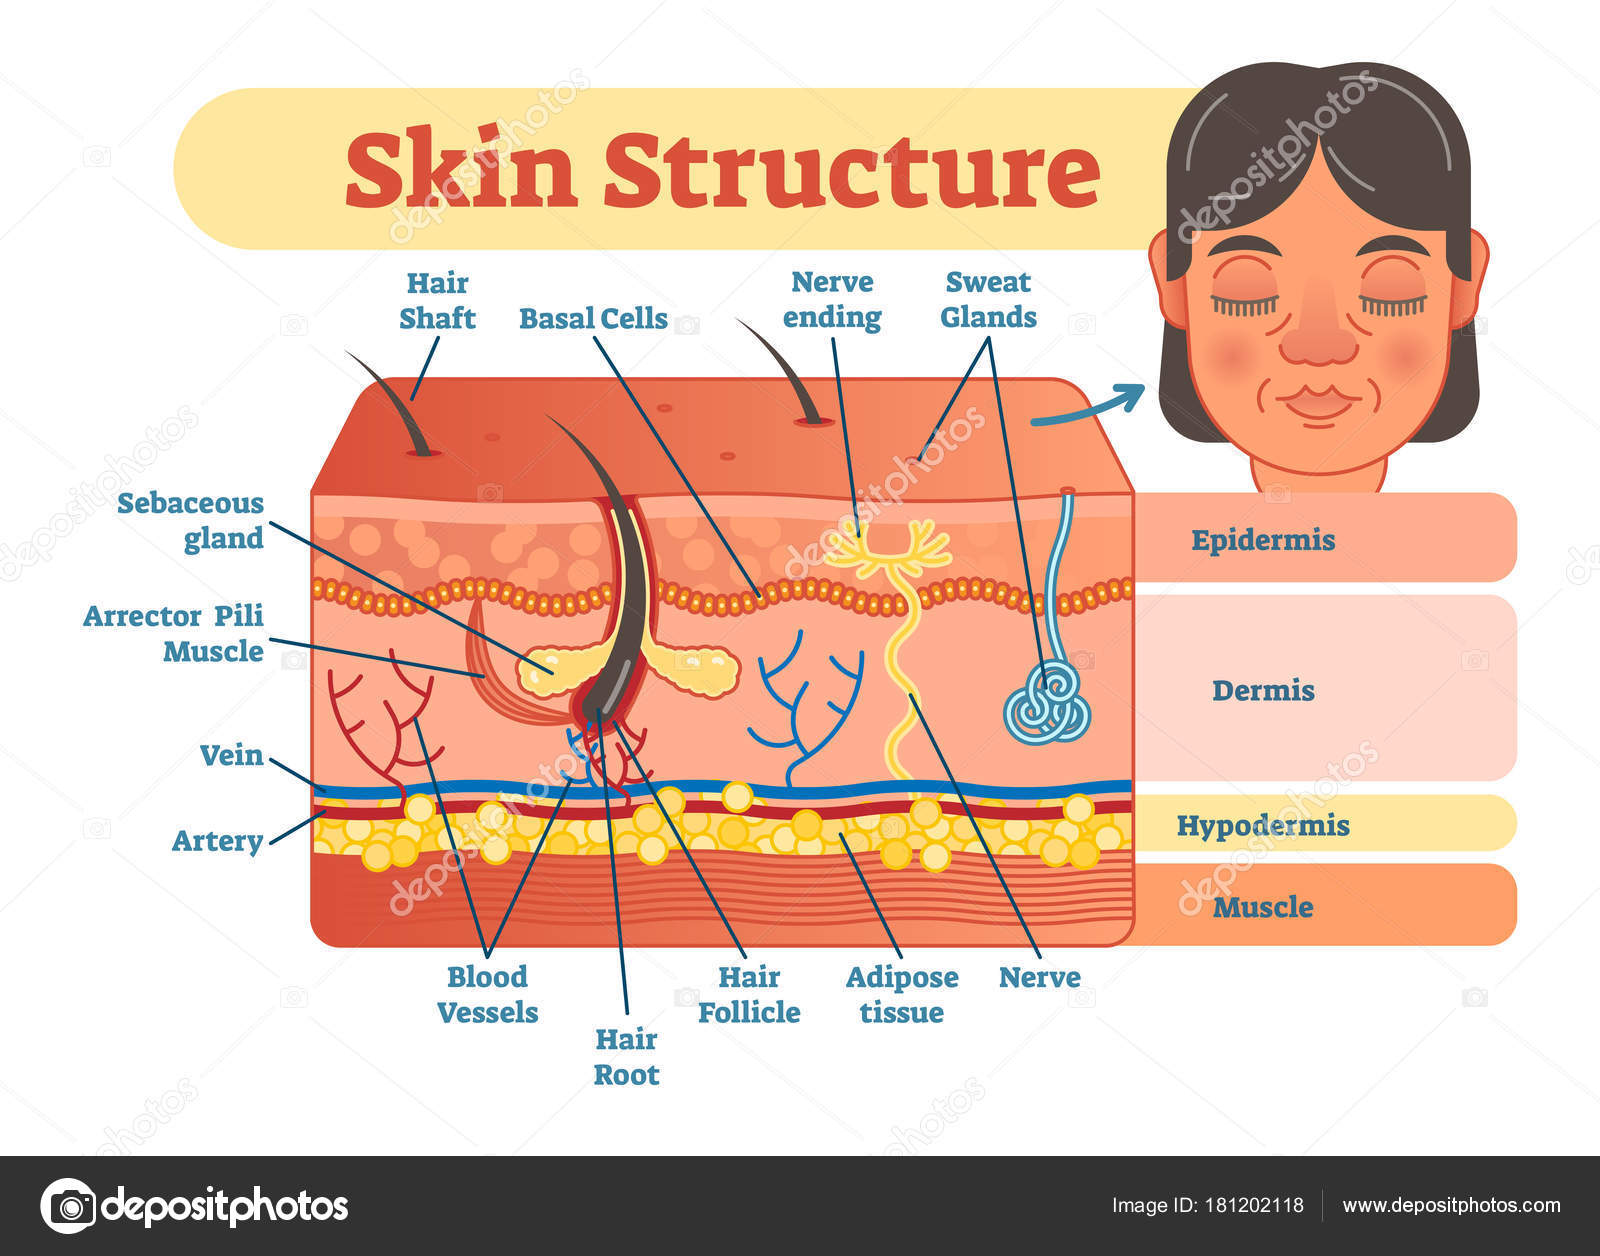 Skin structure vector illustration diagram stock vector skin structure vector illustration diagram with skin layers and main elements educational medical dermatology information vector by normaals pooptronica Image collections